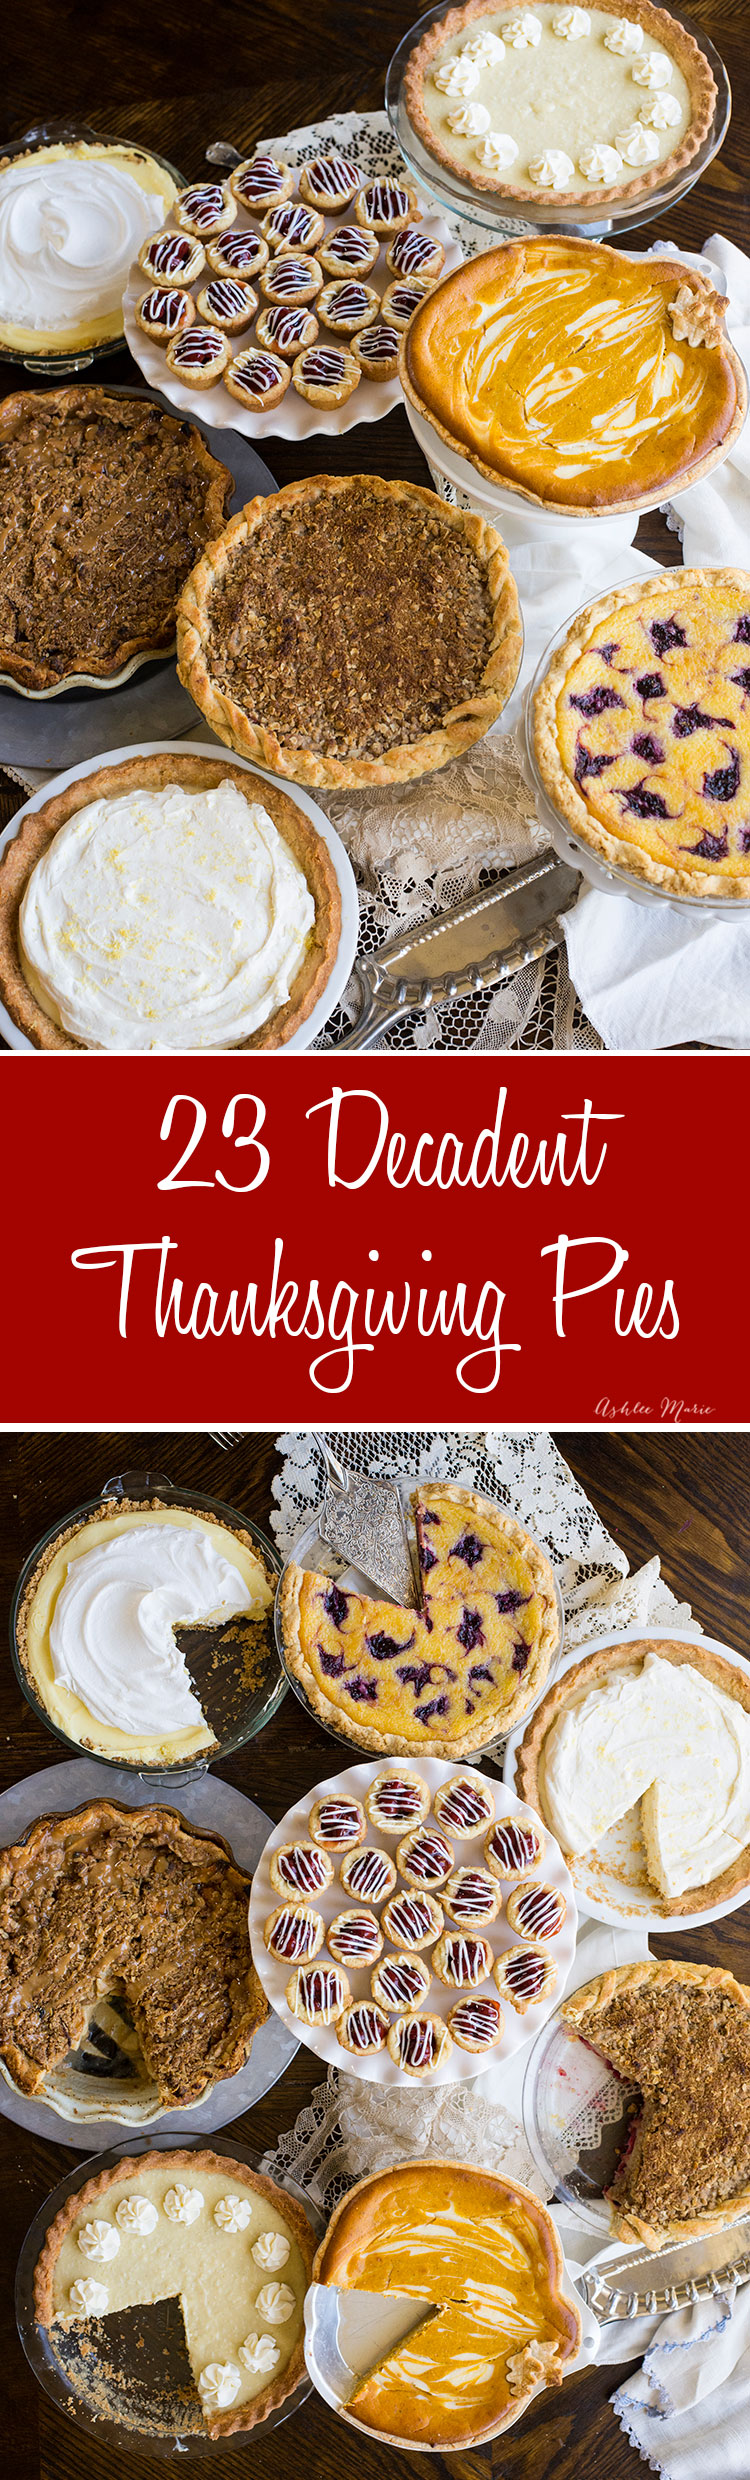 23 of the most amazing pie recipes - something for everyone!